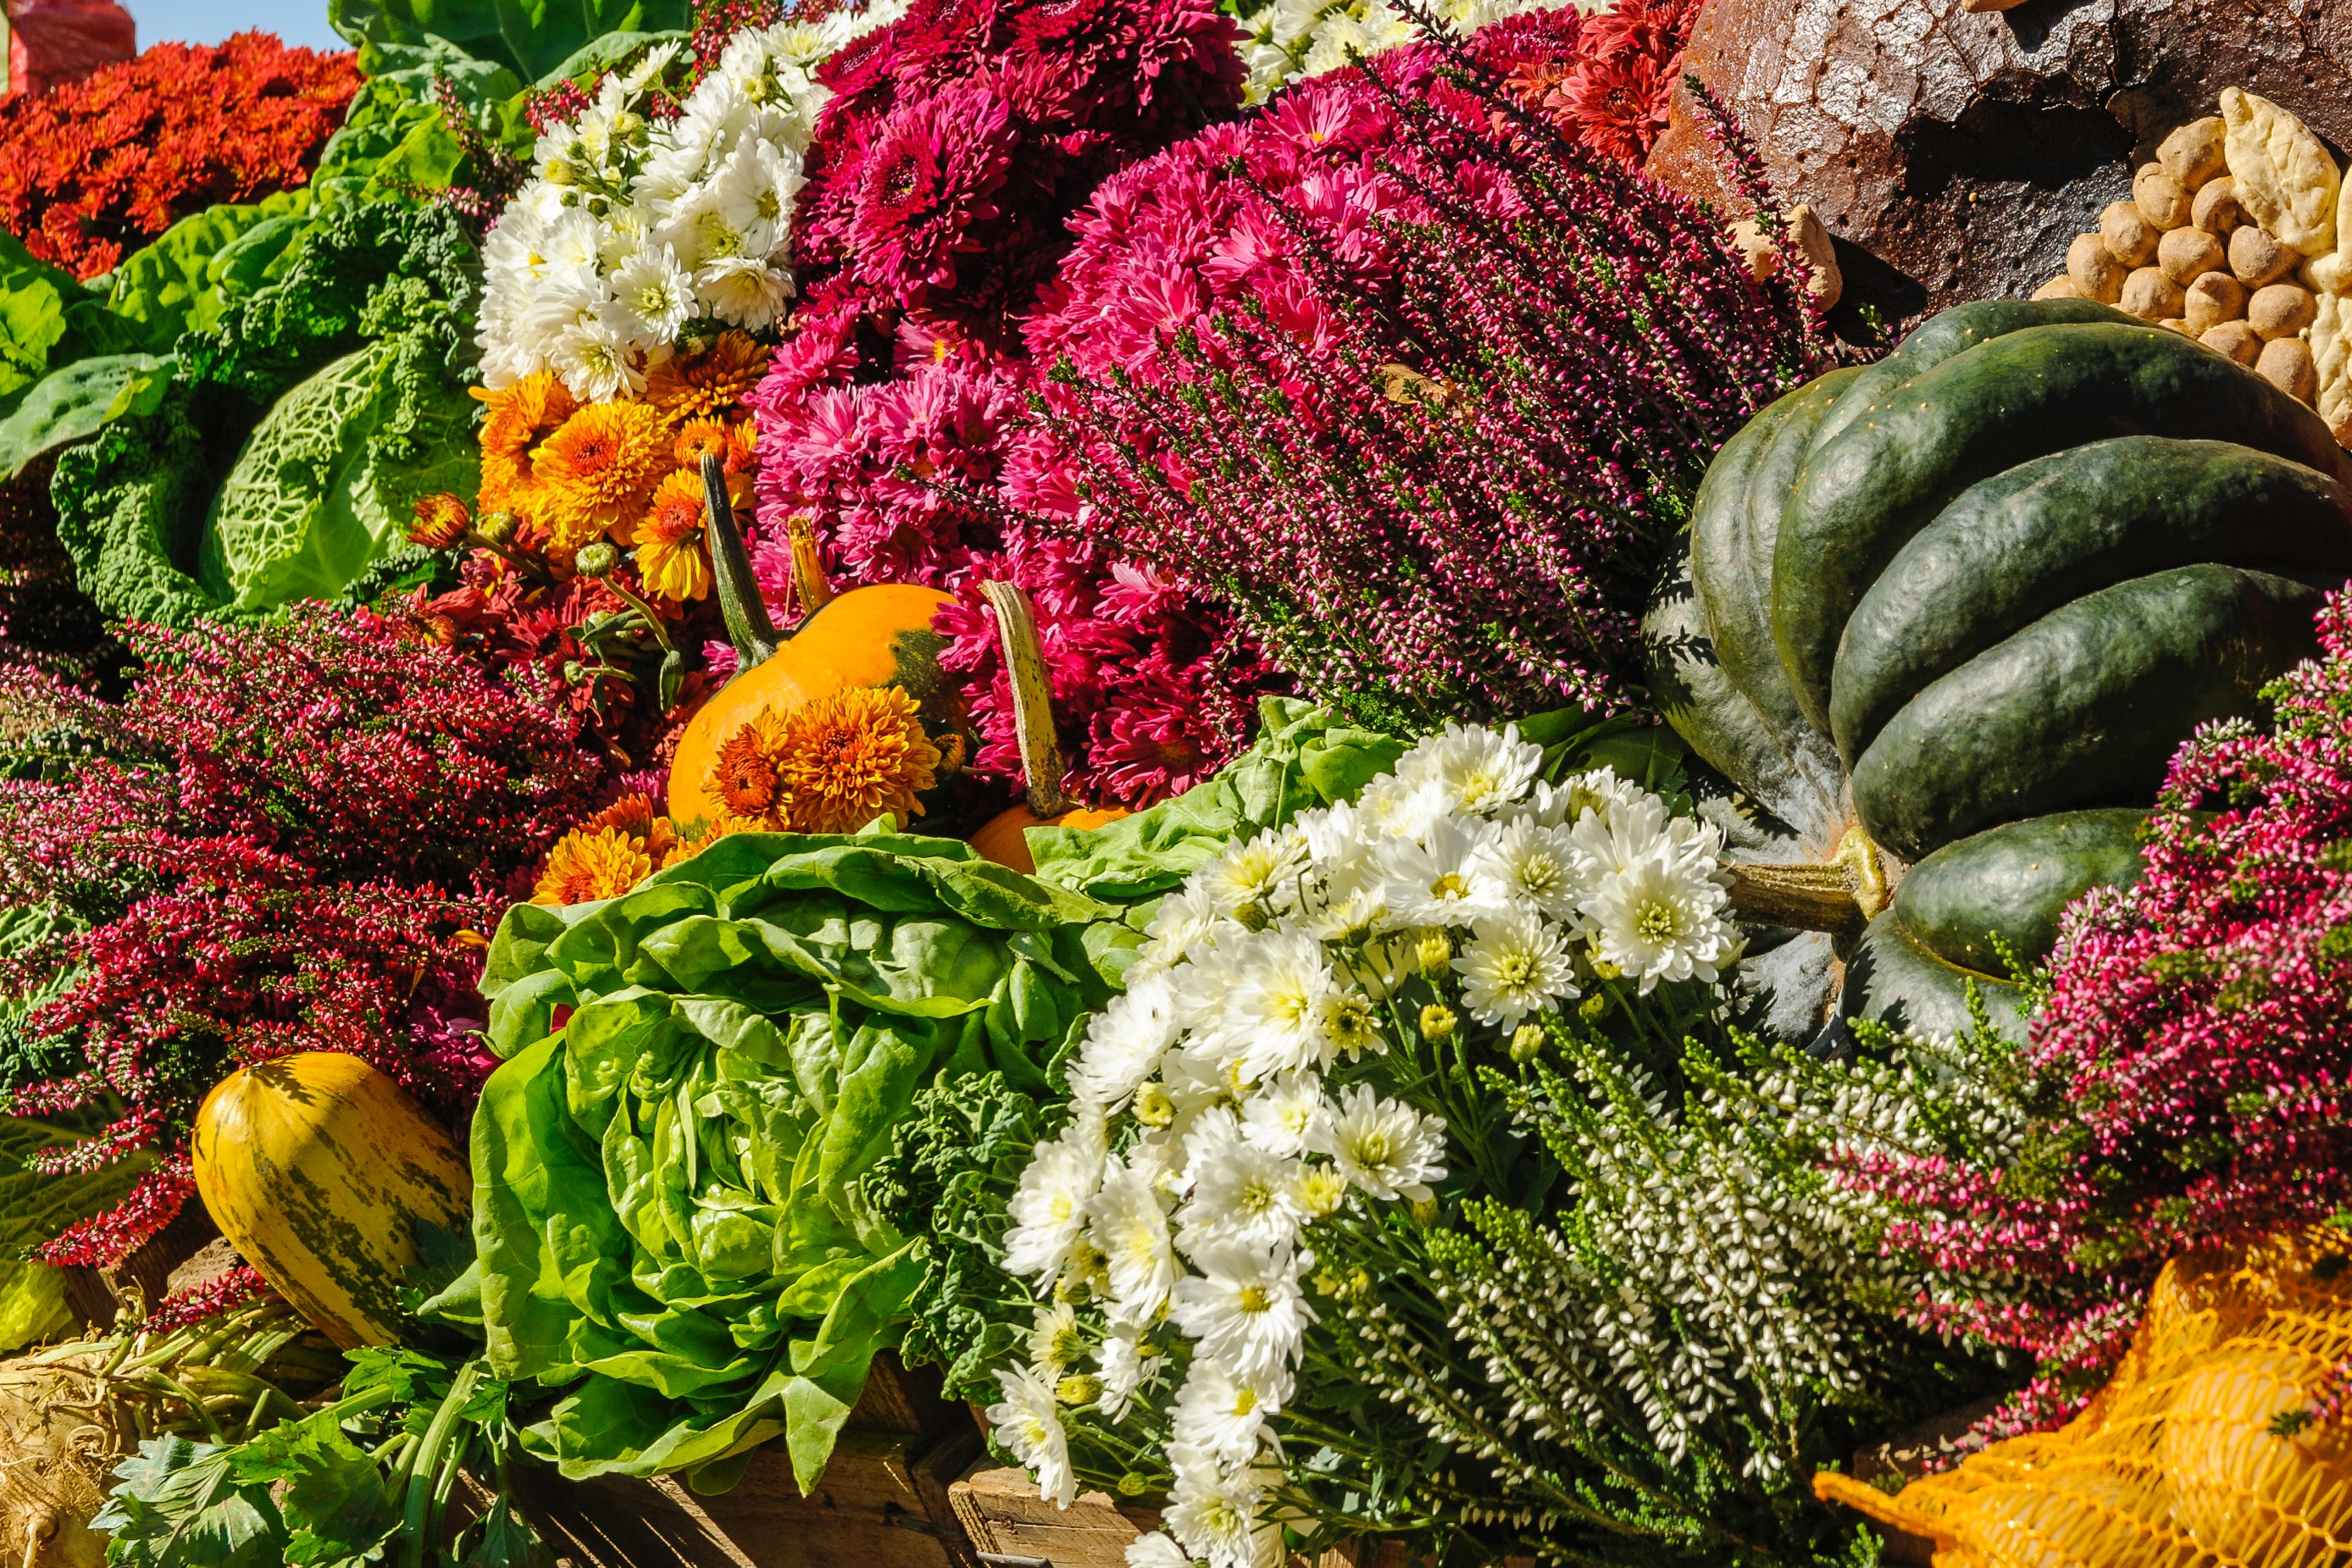 Variety of fall flowers and vegetables